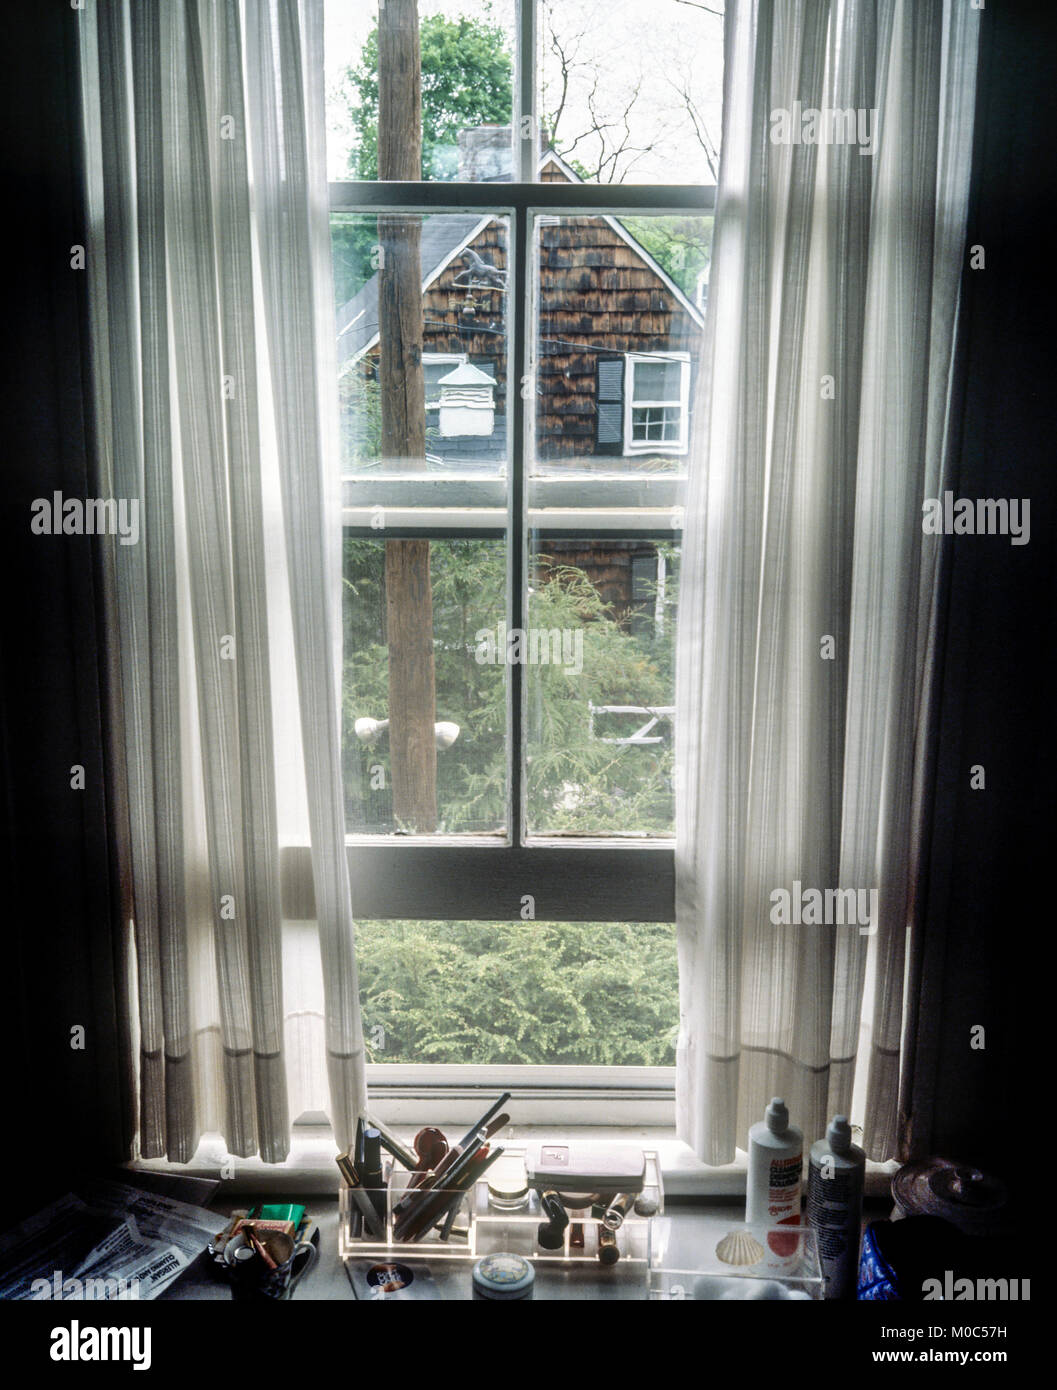 https www alamy com stock photo may 1982 sash window with curtains view on garden neighbour house 172371237 html